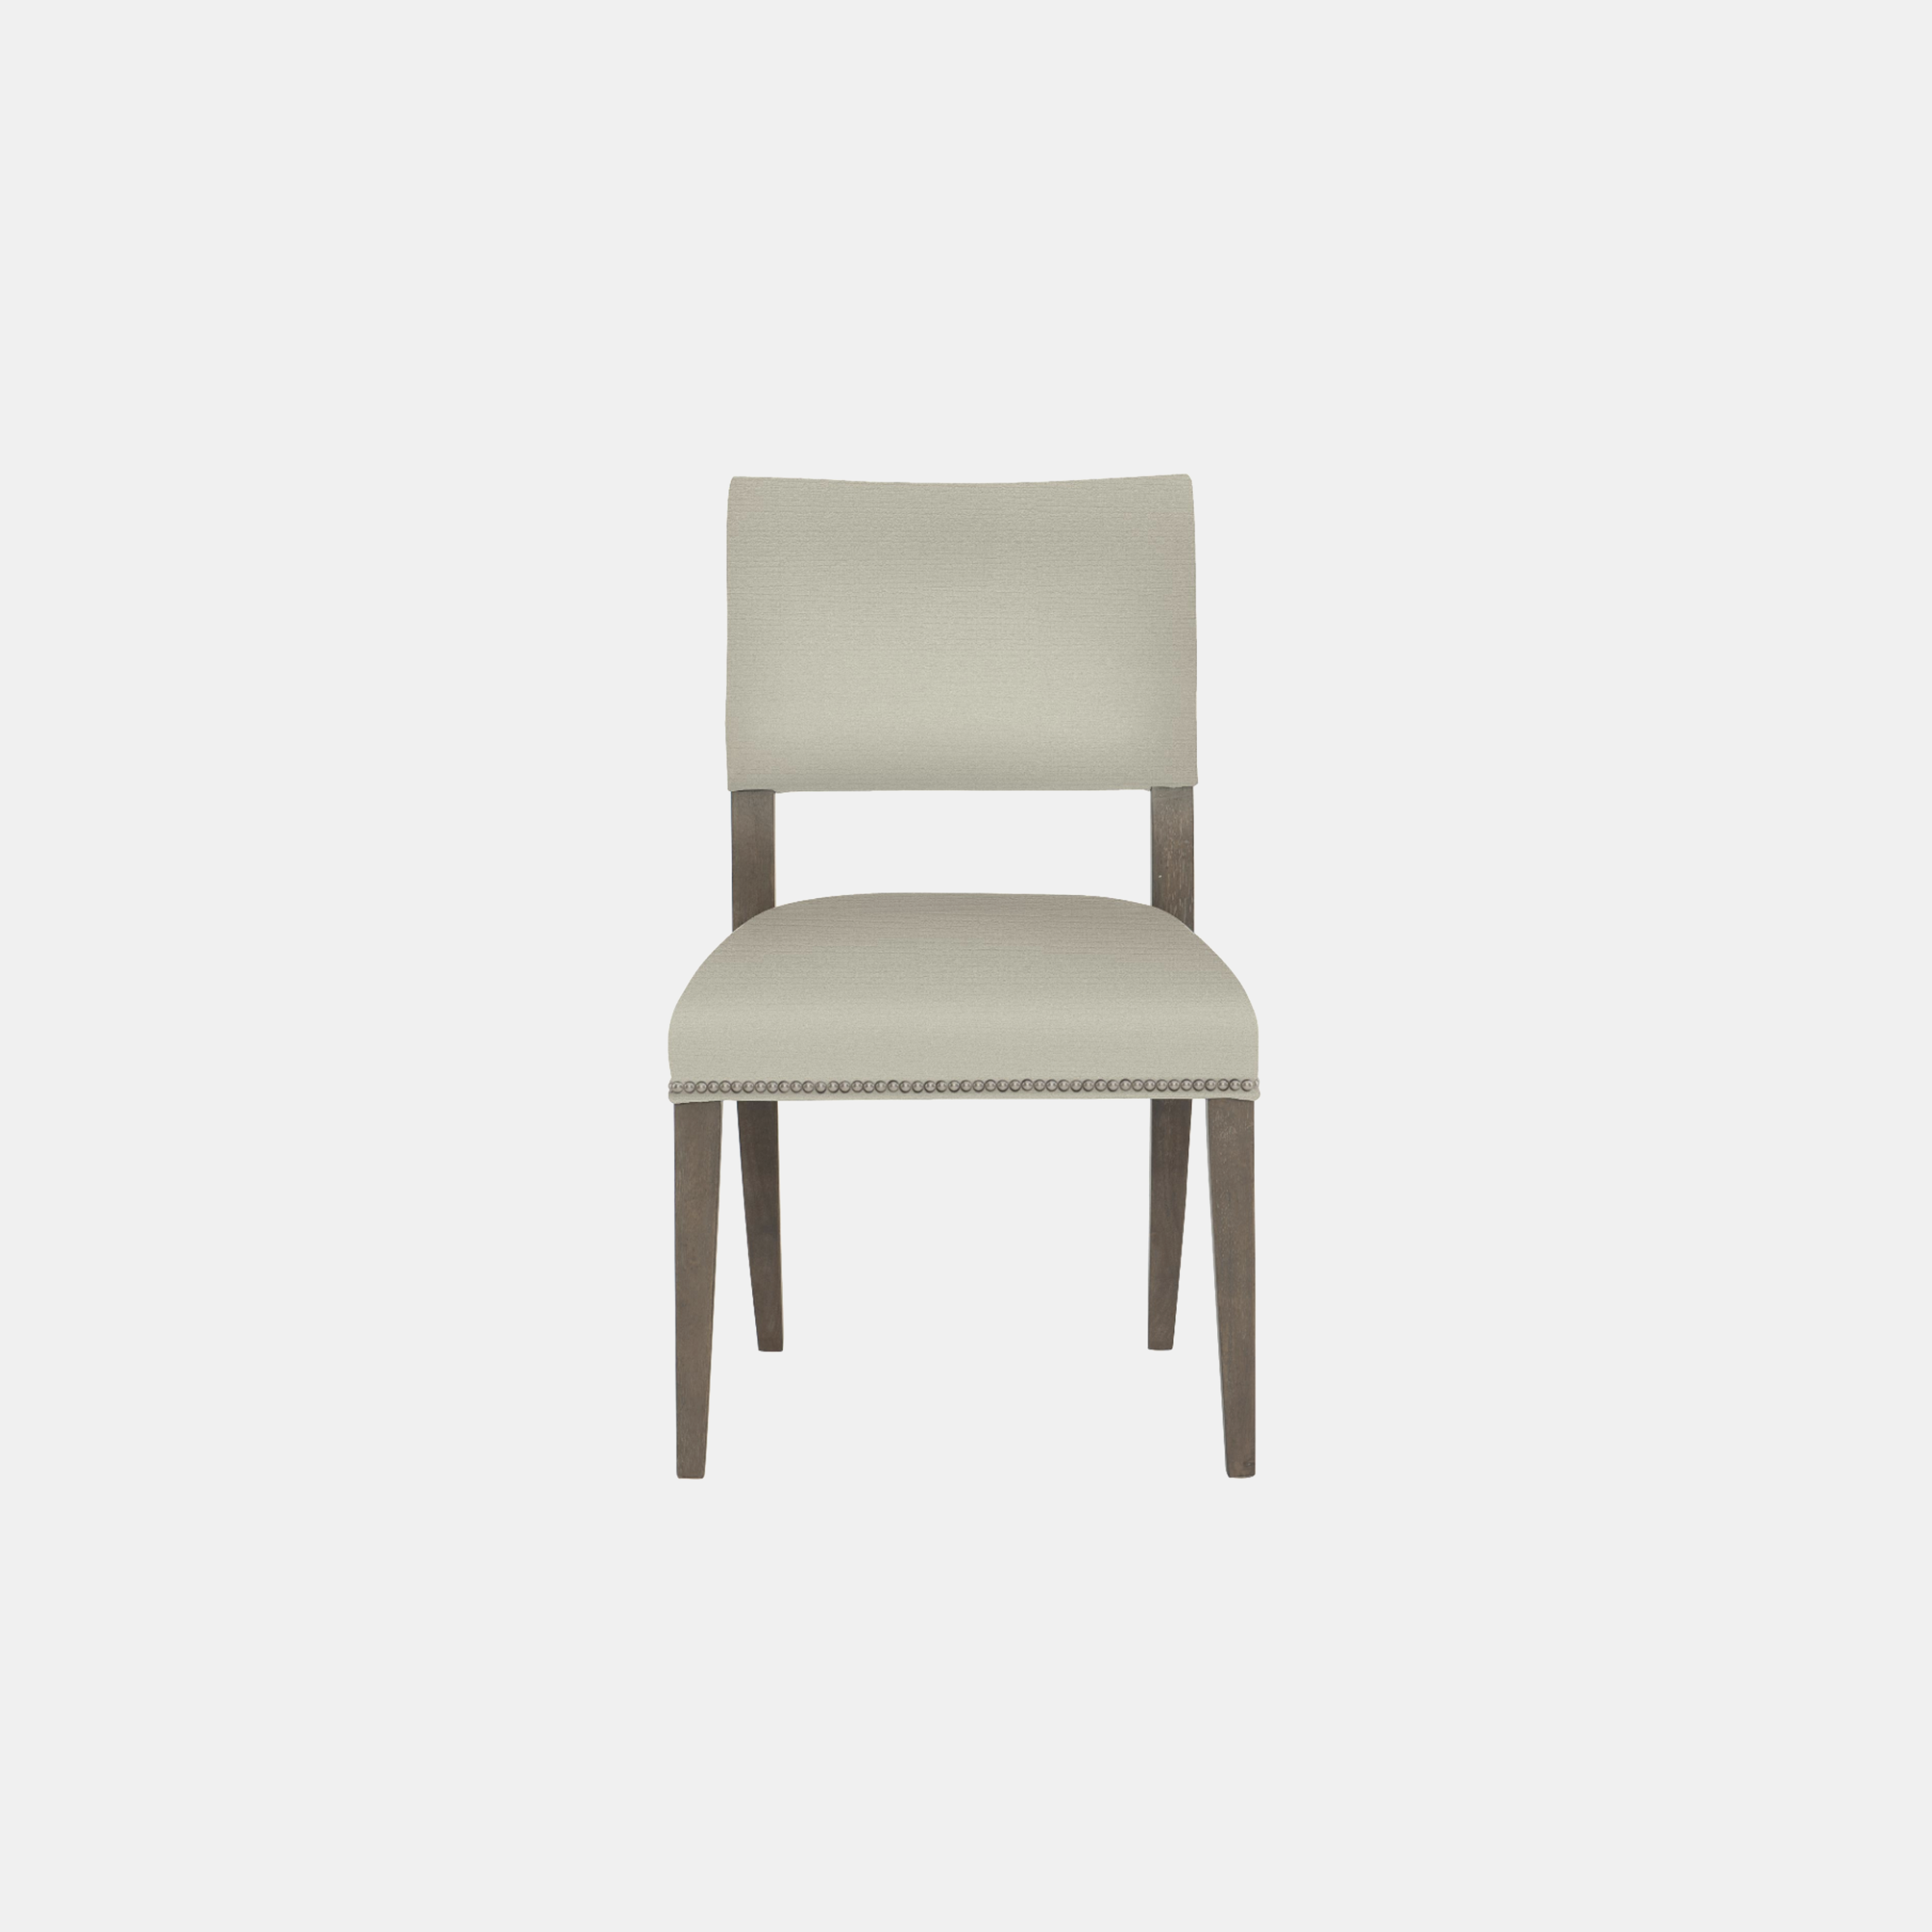 "Moore Side Chair  22-1/8""w x 24-5/8""d x 35-3/4""h Available in fabric, leather, or COM. Also available as arm chair, counter stool, or bar stool. SKU549BHT"